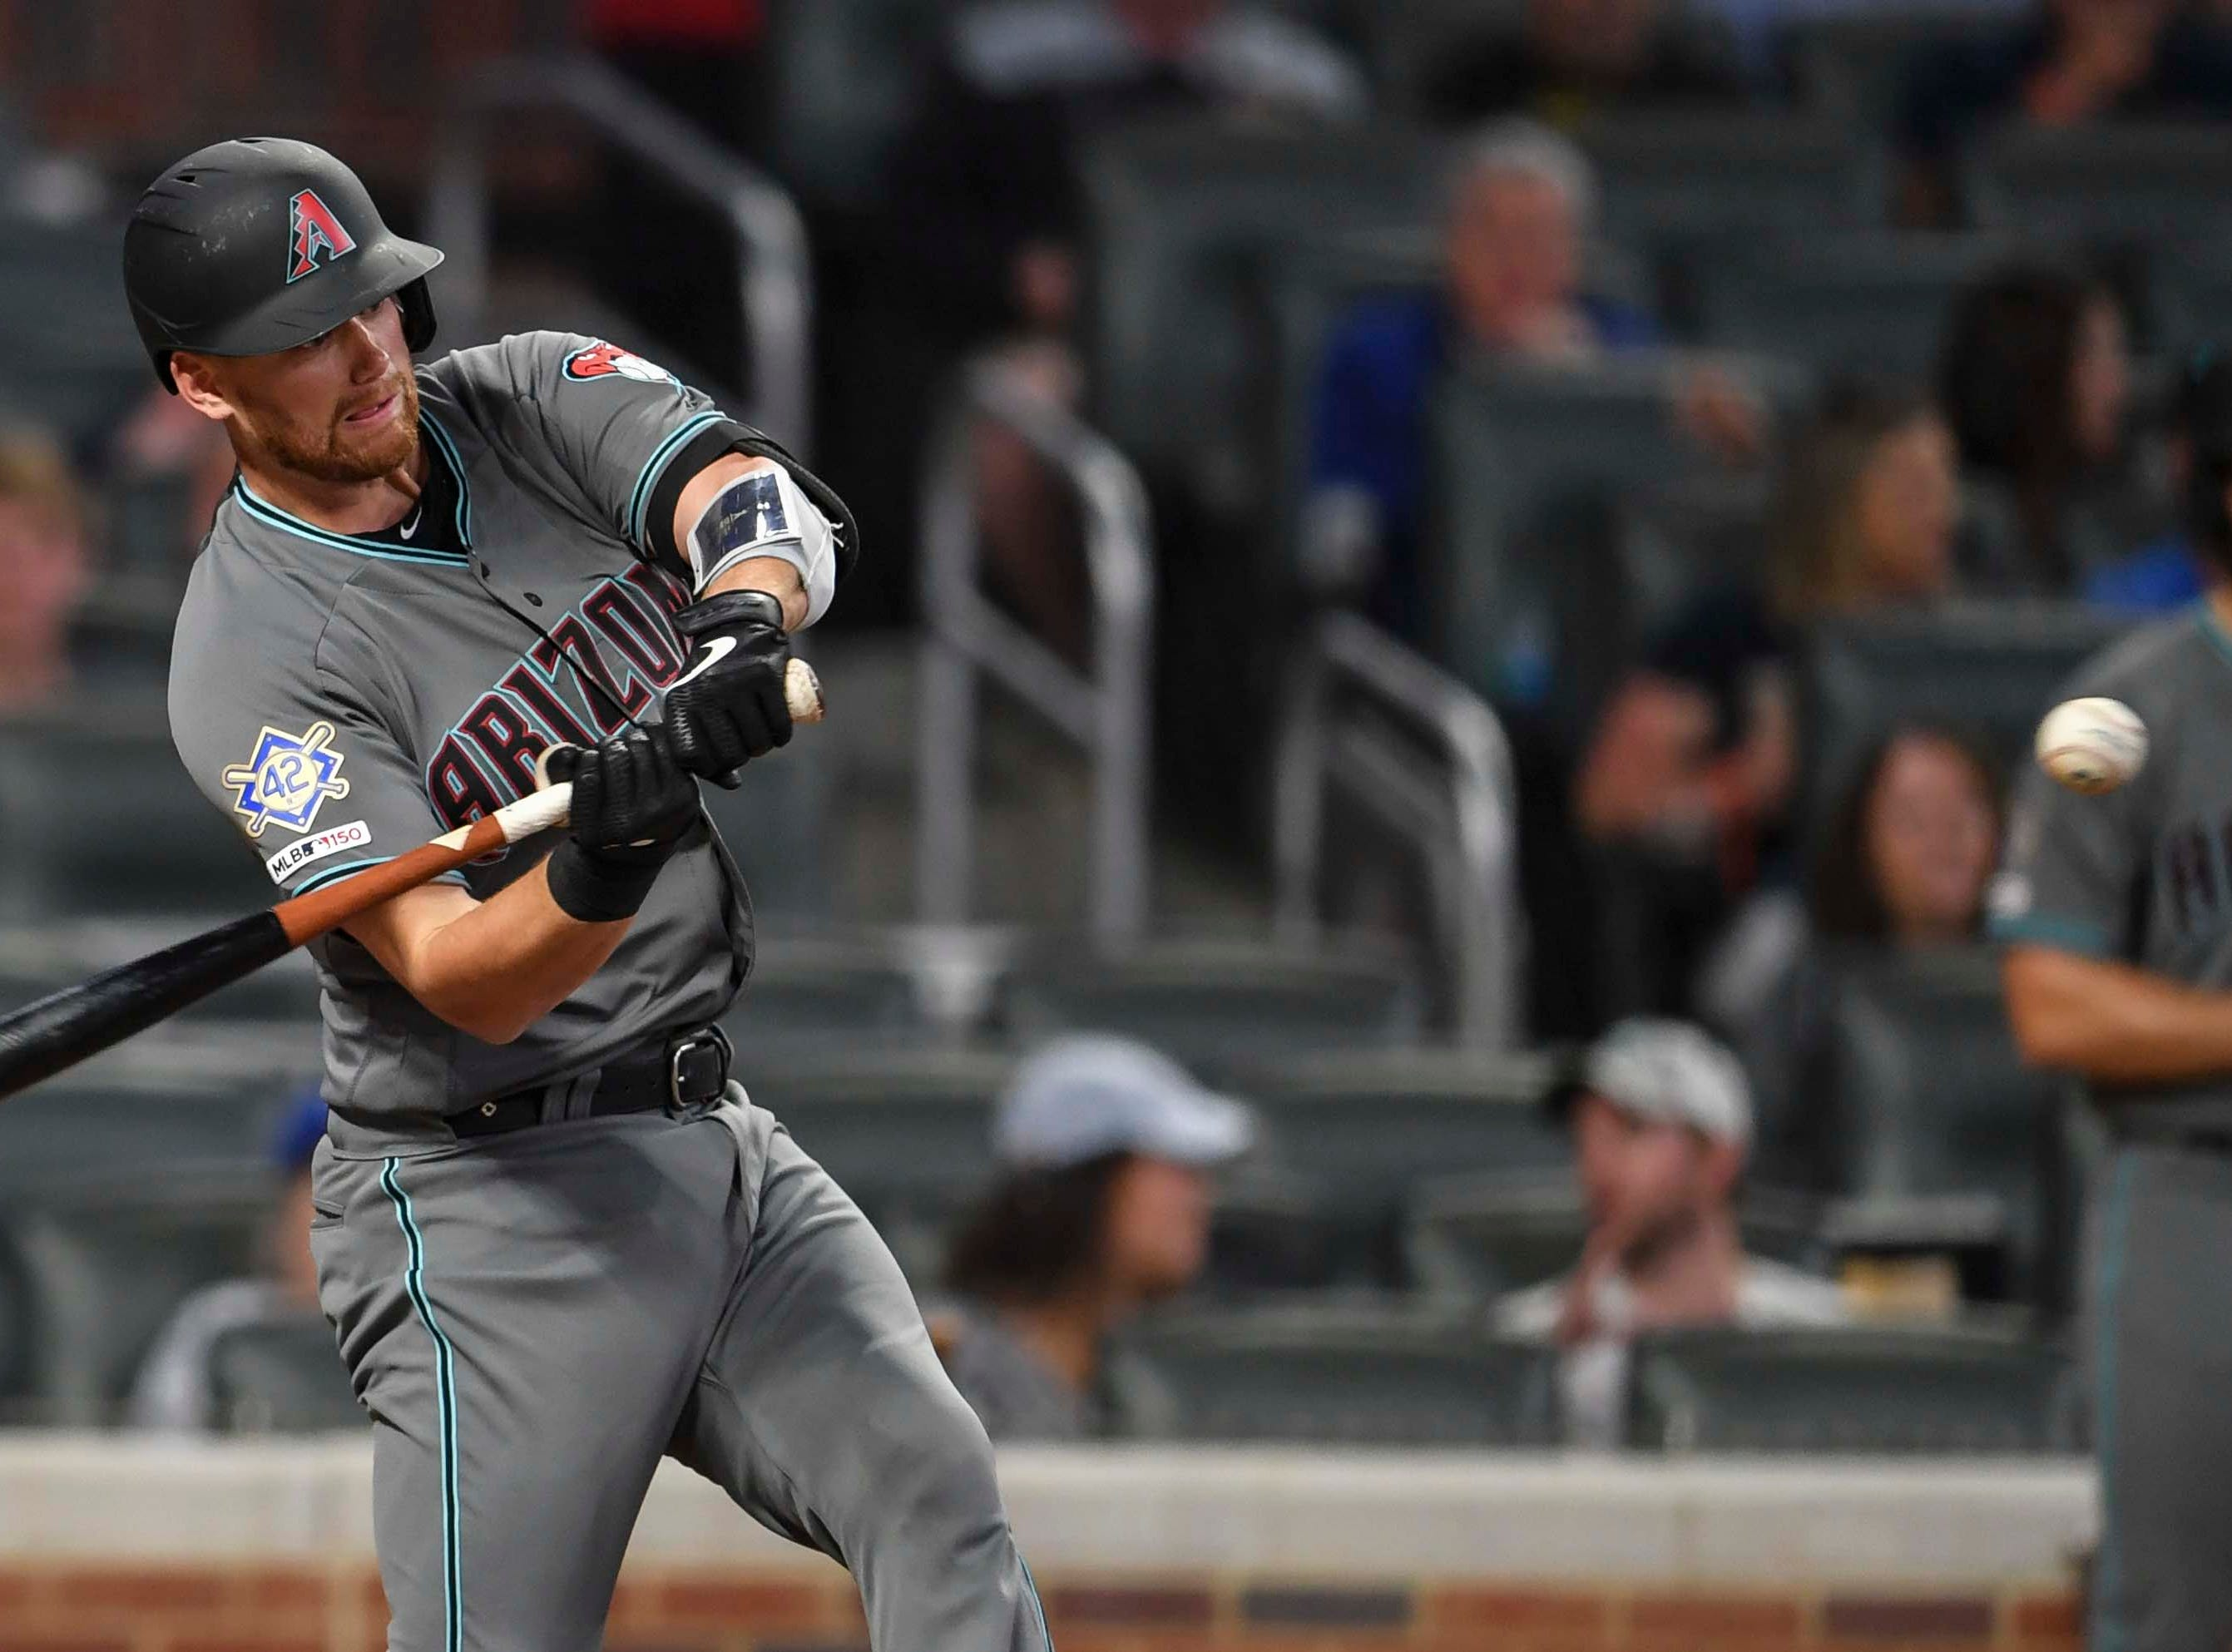 Apr 16, 2019; Atlanta, GA, USA; Arizona Diamondbacks catcher Carson Kelly (18) doubles driving in a run against the Atlanta Braves during the fourth inning at SunTrust Park. Mandatory Credit: Dale Zanine-USA TODAY Sports